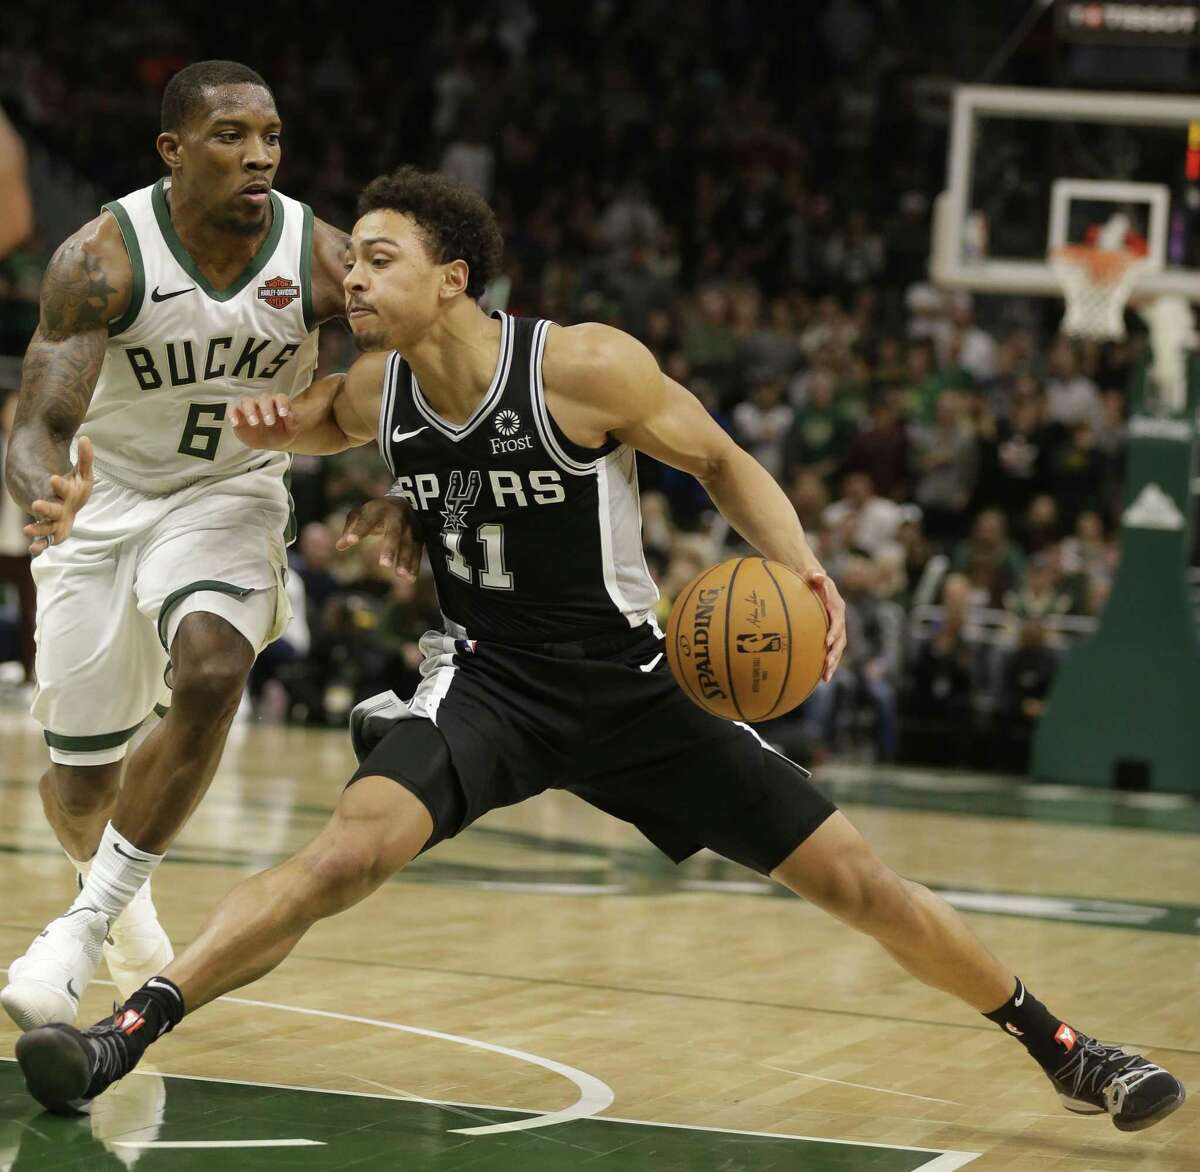 San Antonio Spurs' Bryn Forbes, right, drives against the Milwaukee Bucks' Eric Bledsoe during the second half of an NBA basketball game Saturday, Nov. 24, 2018, in Milwaukee. (AP Photo/Jeffrey Phelps)